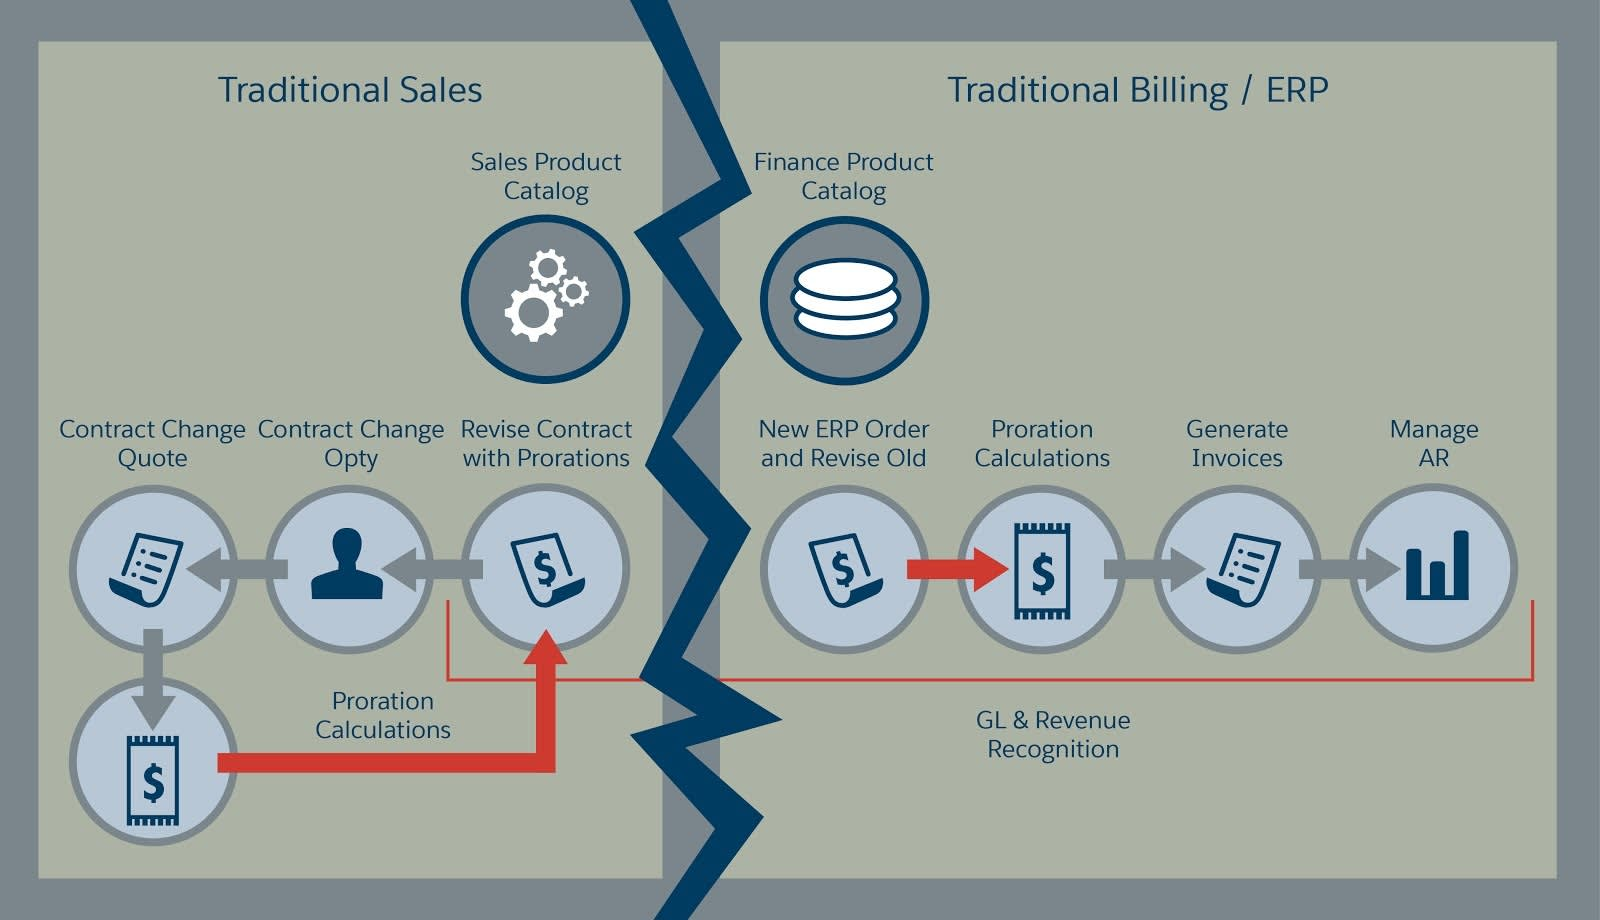 A jagged line separates the two sides of the traditional system and prorations add complexity, showing how pivoting to a recurring business model breaks the traditional revenue lifecycle.